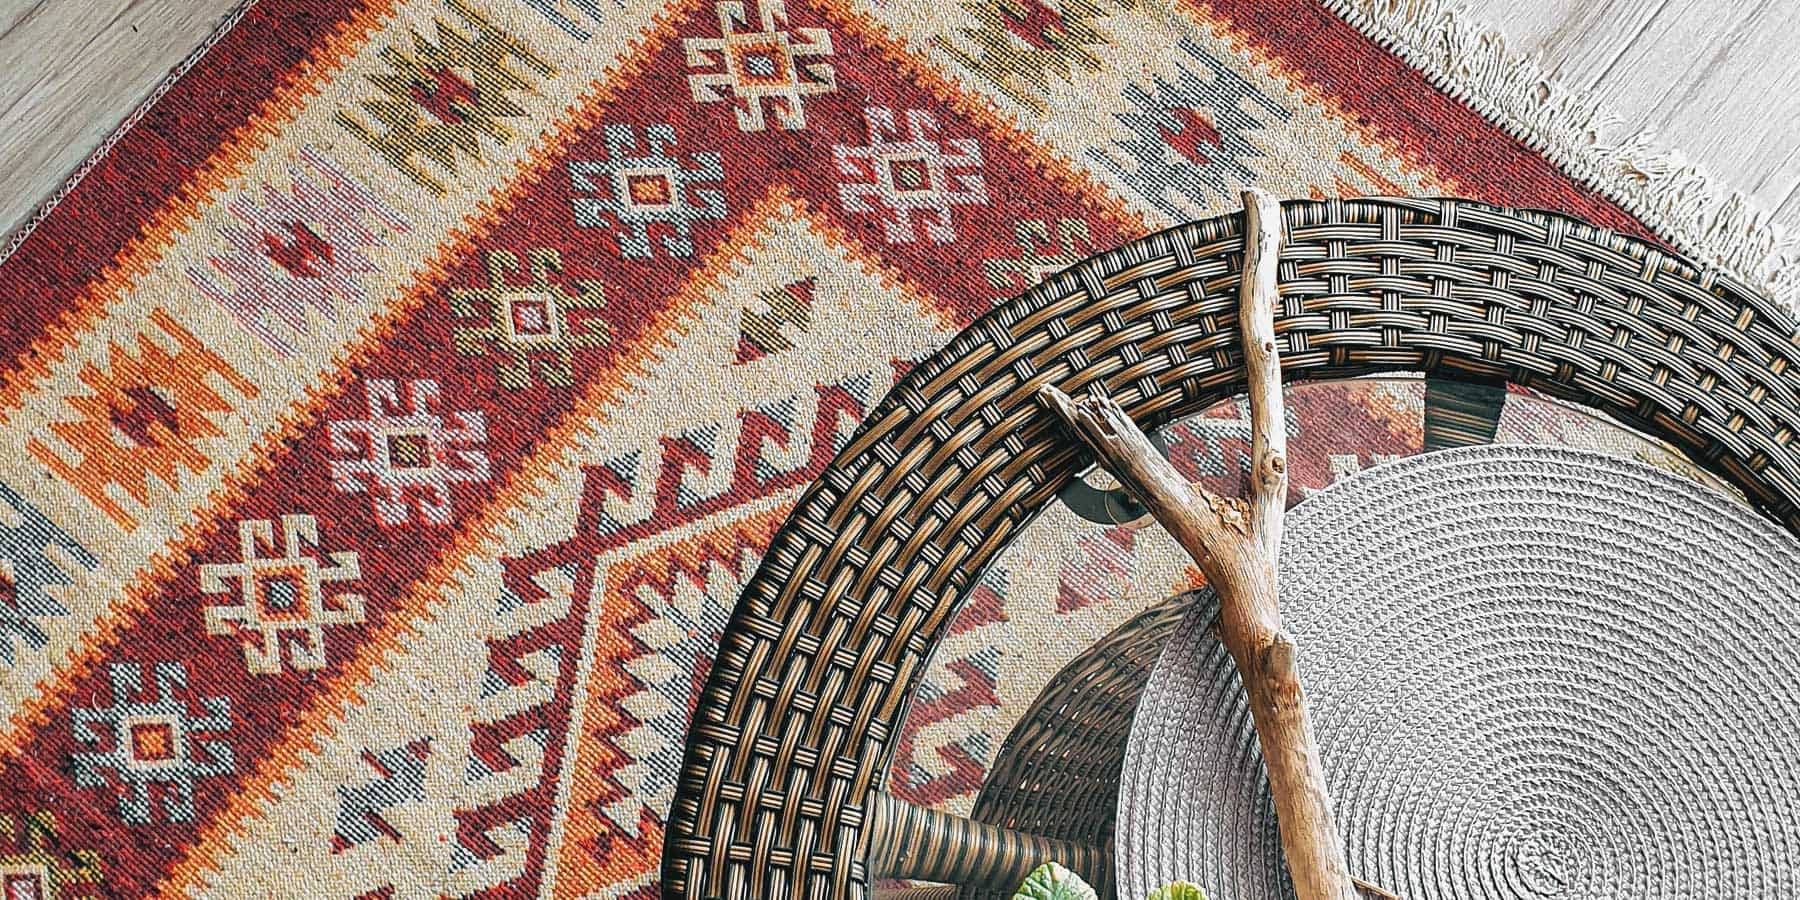 Boho Décor Ideas by RealCraft: Rug with different colors and patterns